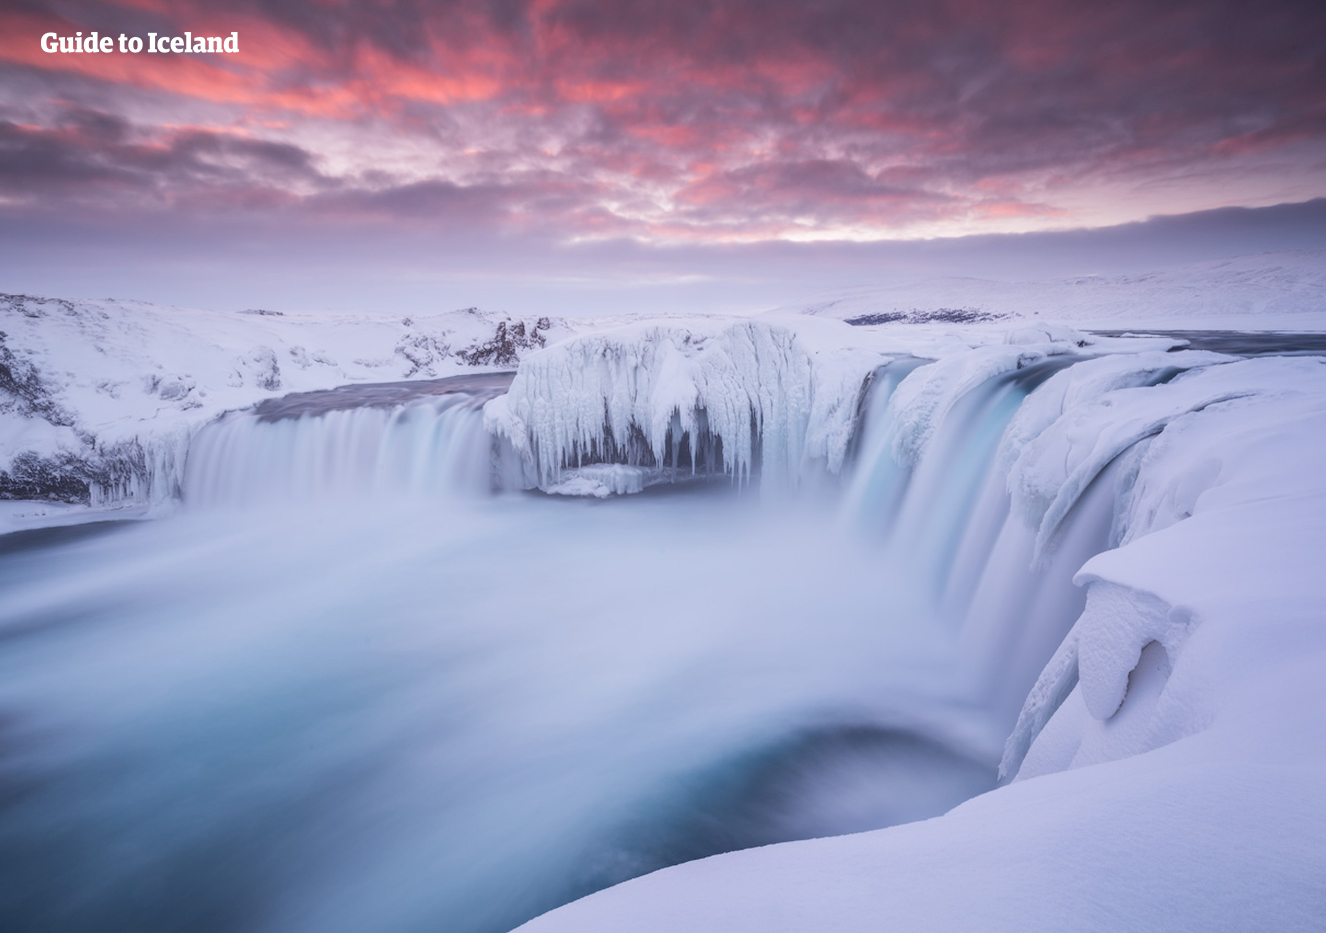 Goðafoss waterfall is one of north Iceland's most beloved attractions, with a history dating back over a millenium.